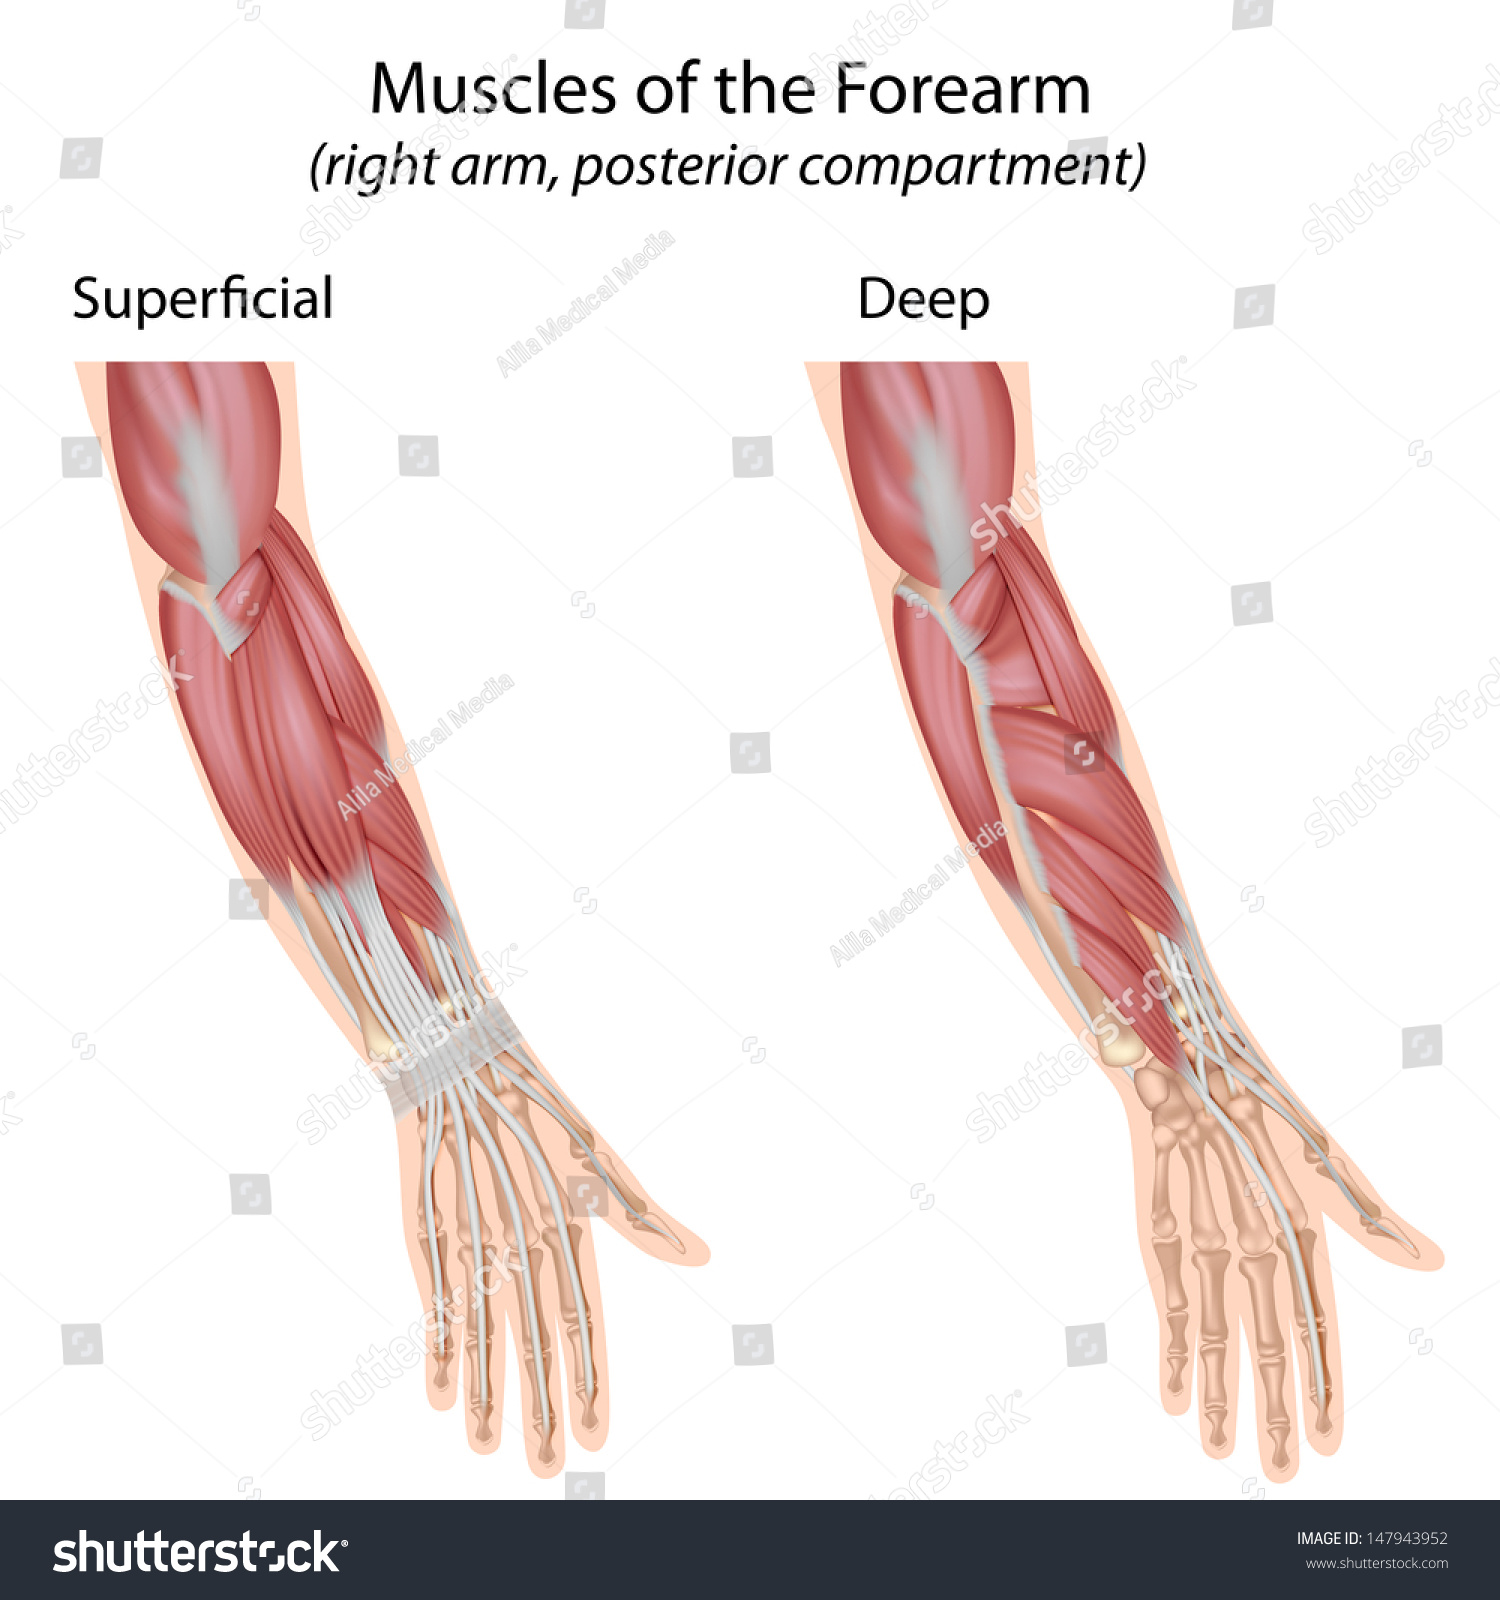 Forearm Muscles Dorsal Compartment Unlabeled Stock Illustration ...